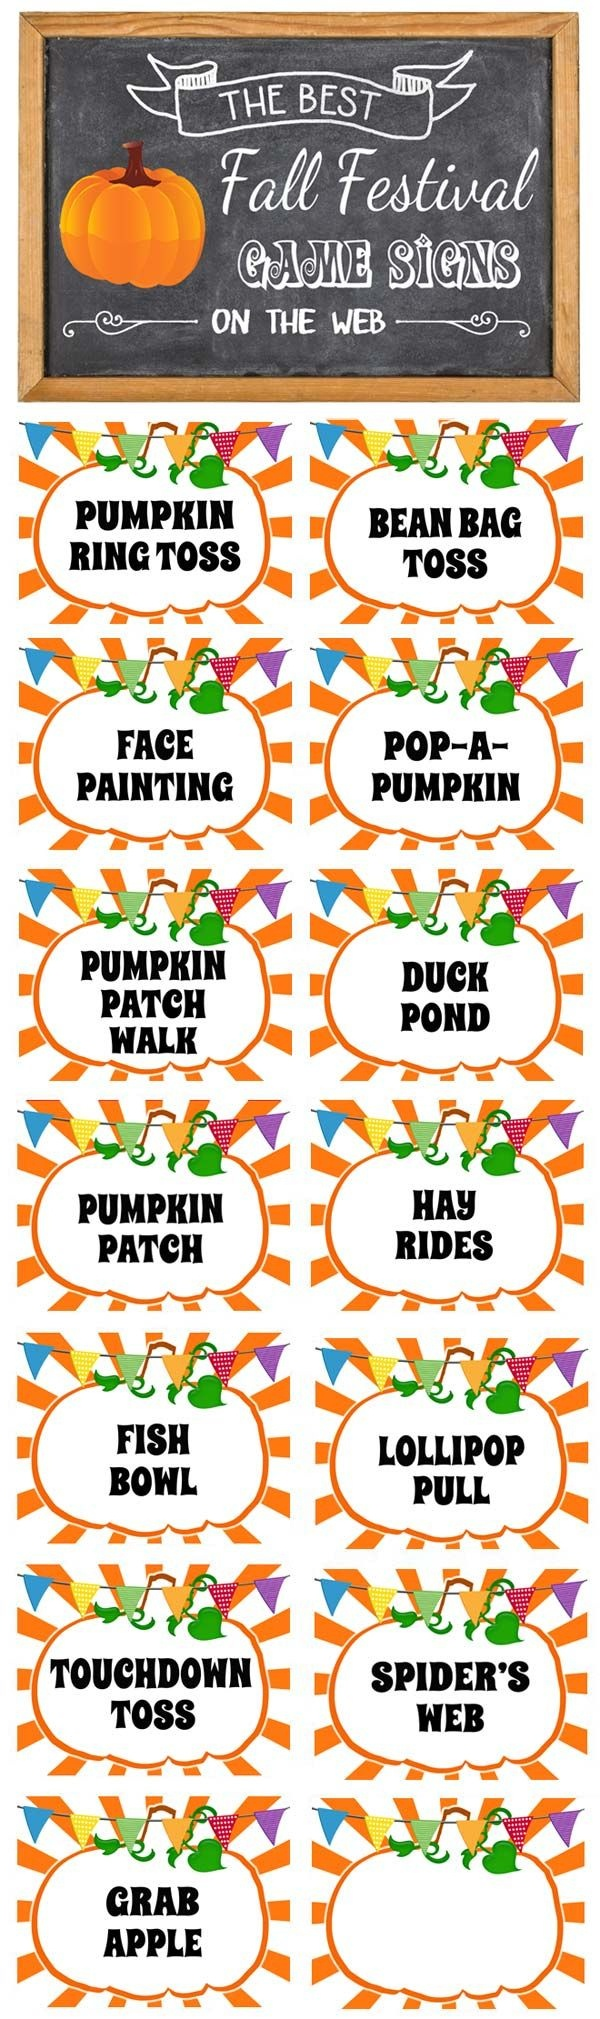 Fall Festival Signs - Free Printable Signs Download! | Fall Festival - Free Printable Fall Festival Invitations